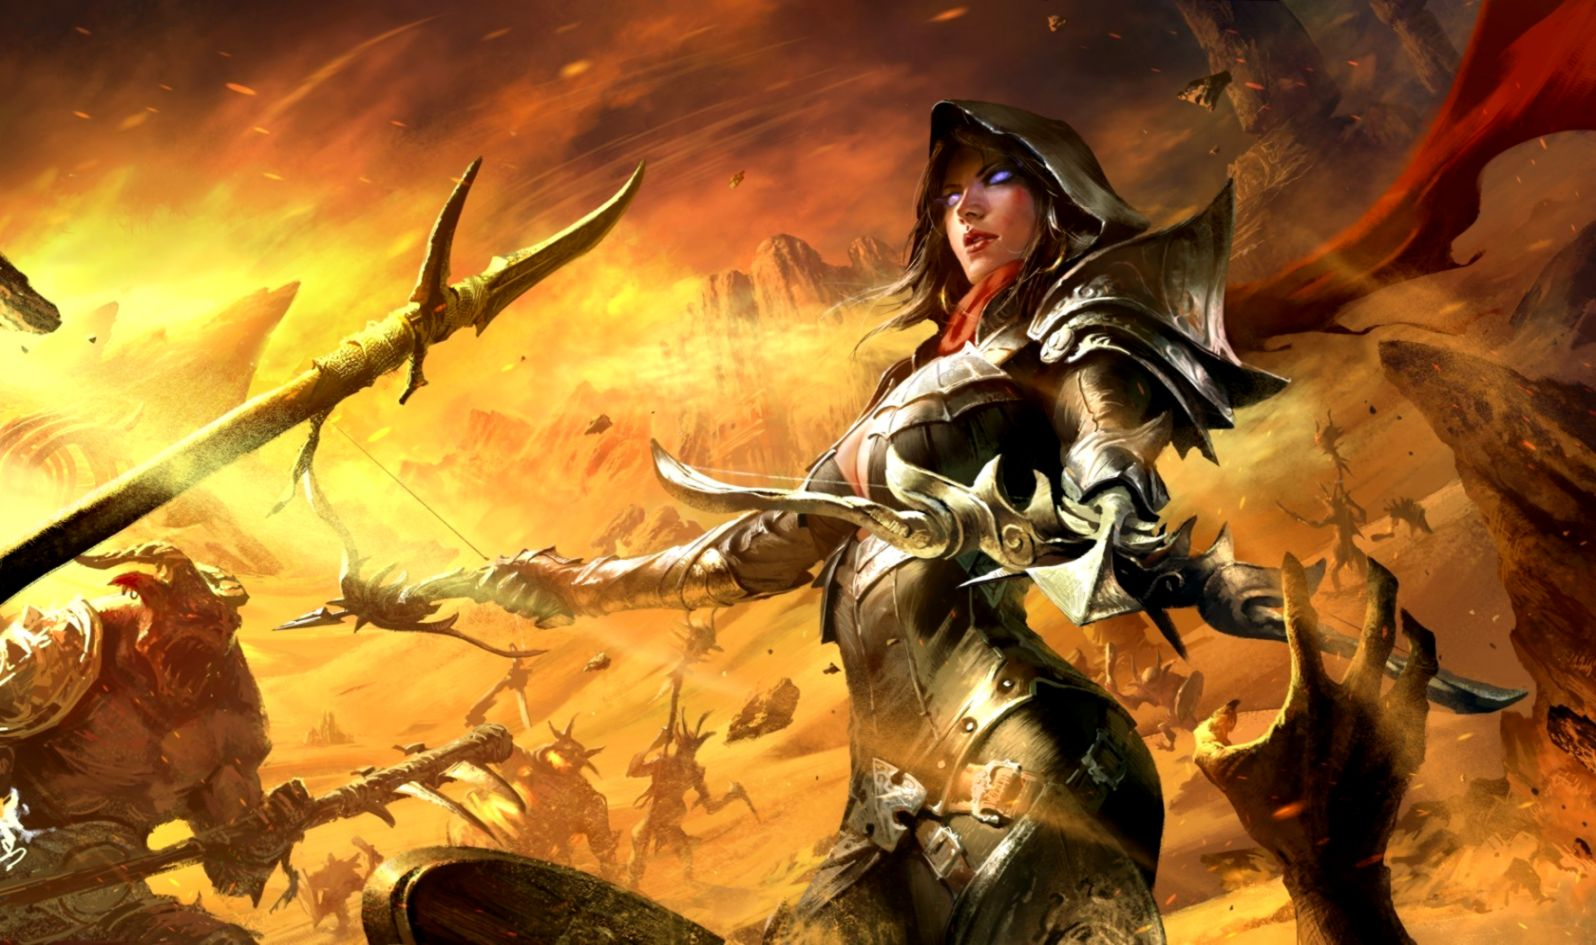 Diablo 3 Game Pc Hd Wallpaper Eazy Wallpapers